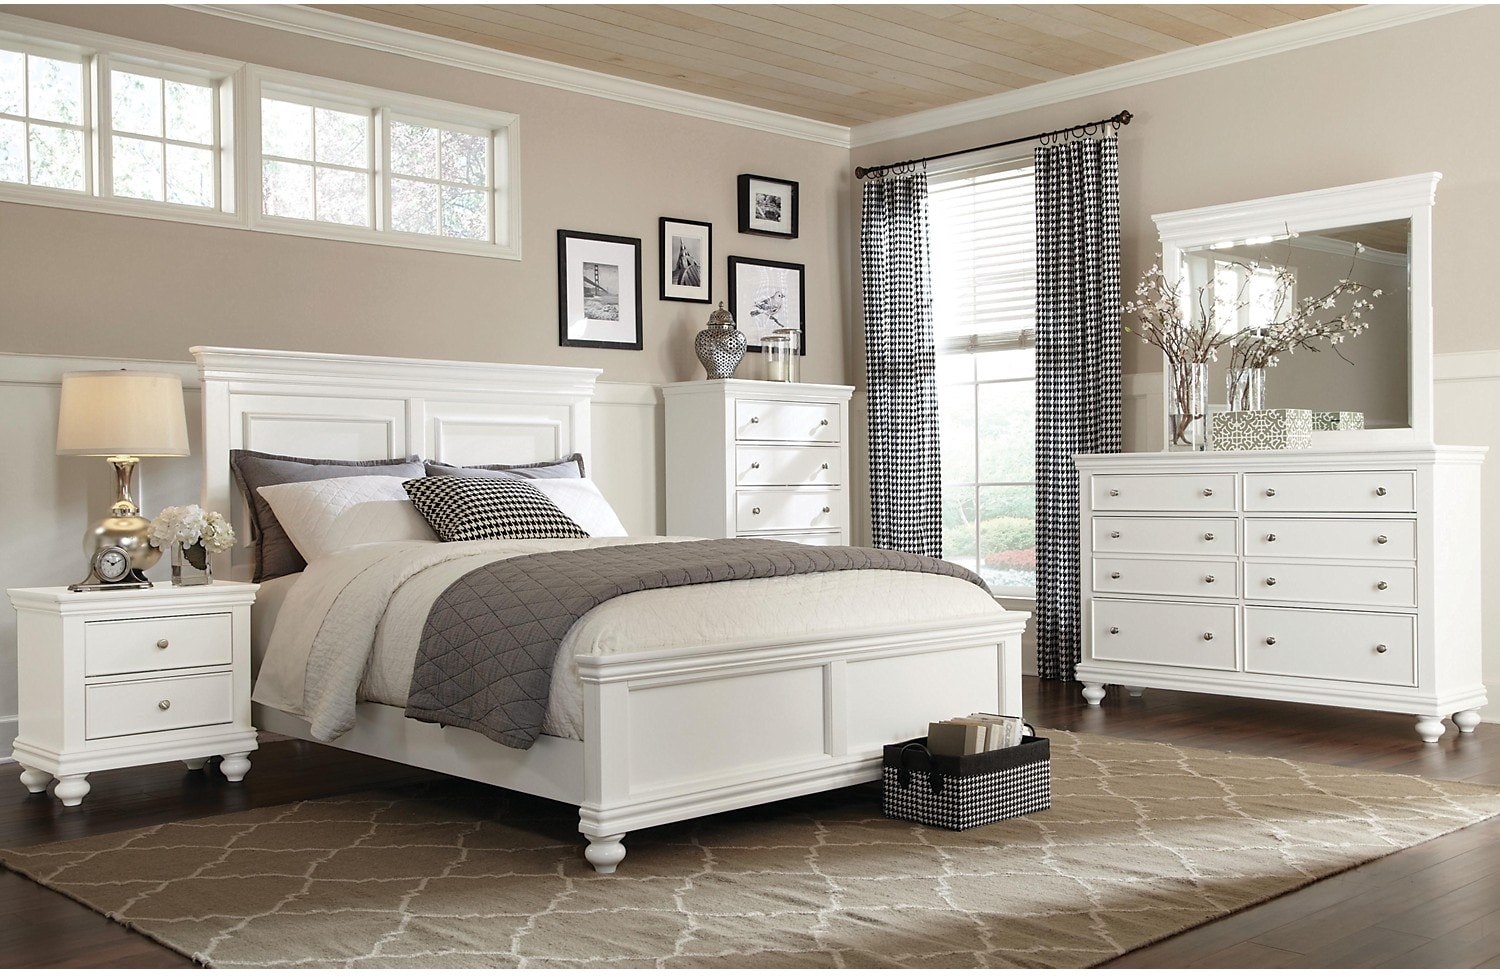 White king bed set -  King Bedroom Set White Hover To Zoom